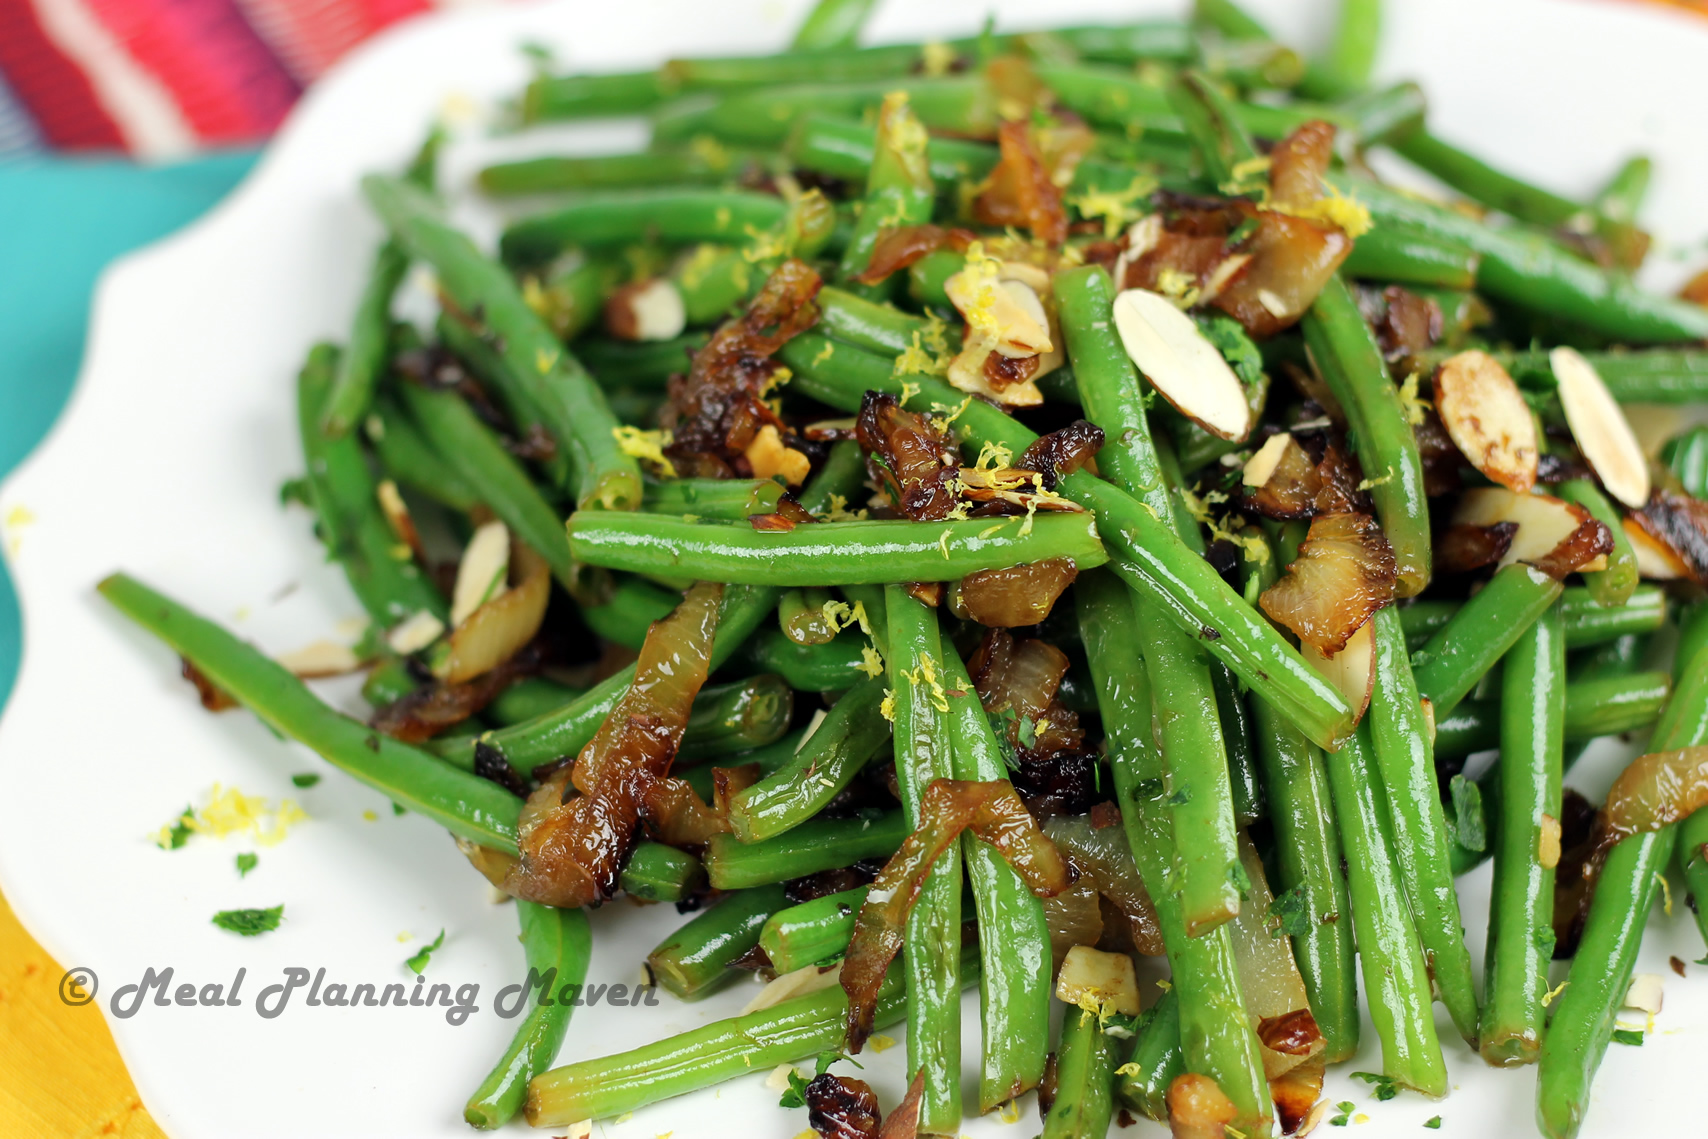 Pan-Roasted Green Beans with Caramelized Onions - Meal Planning Maven